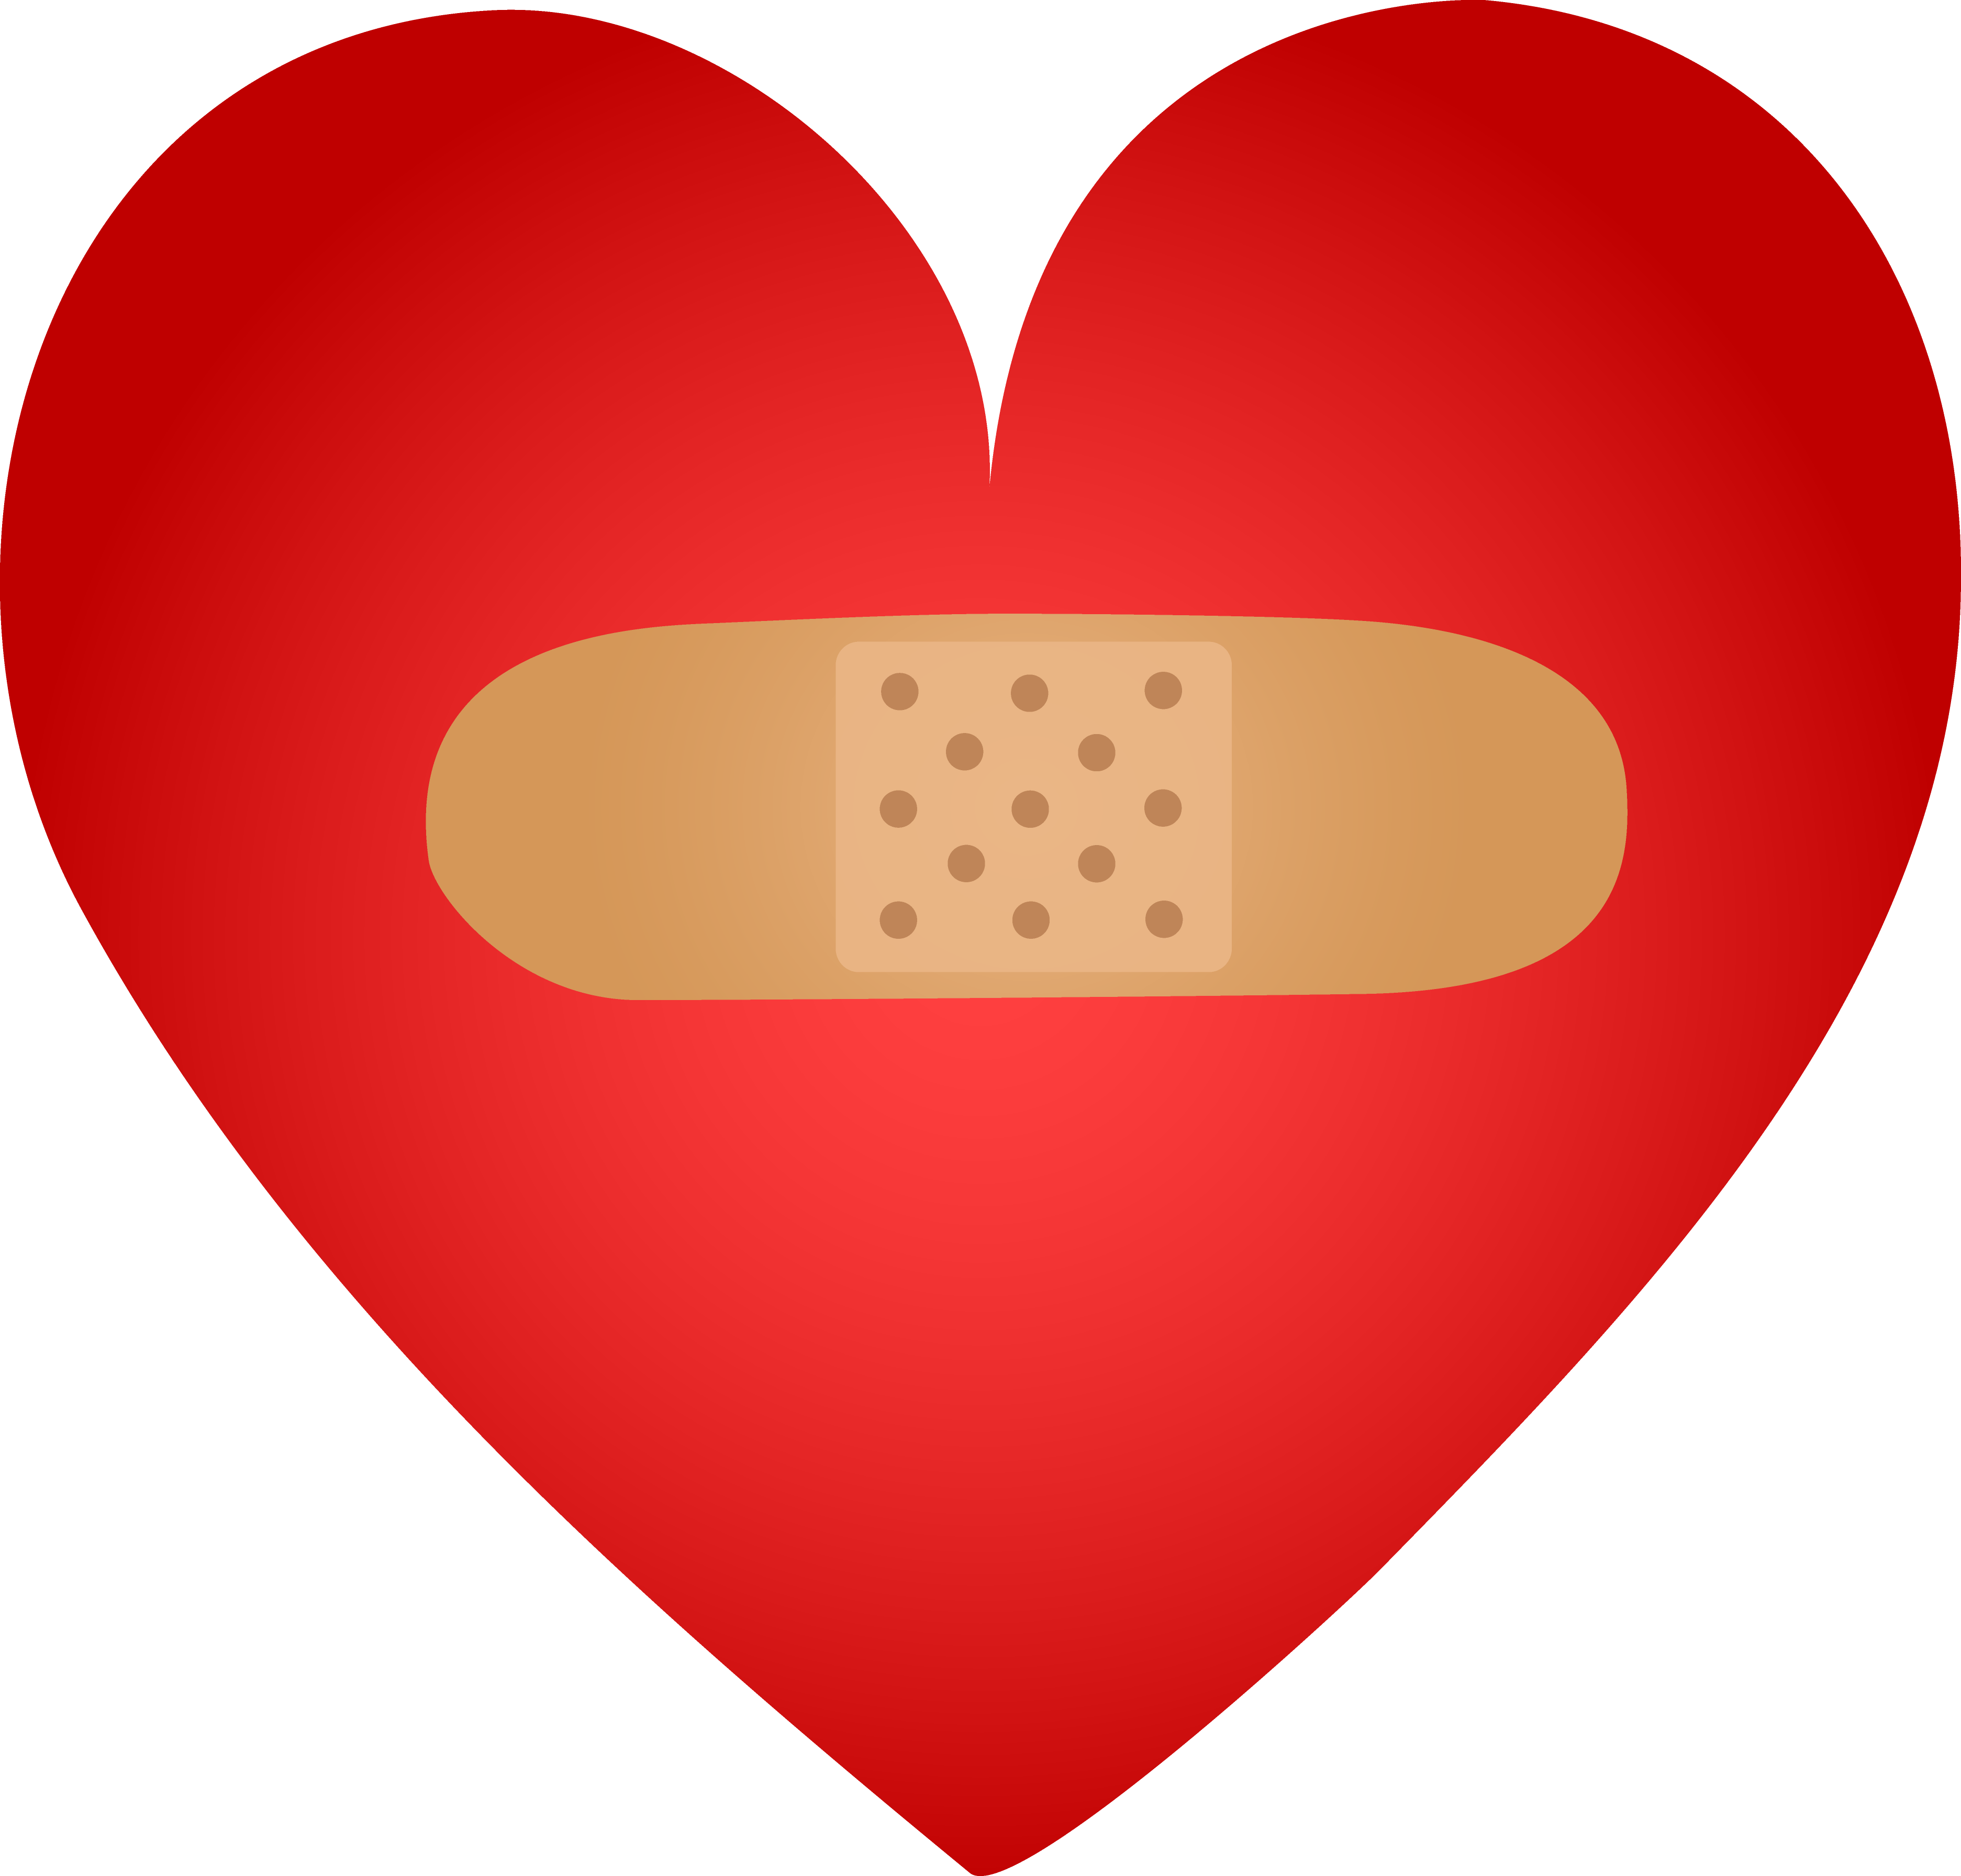 3746x3583 Healing Heart With Band Aid